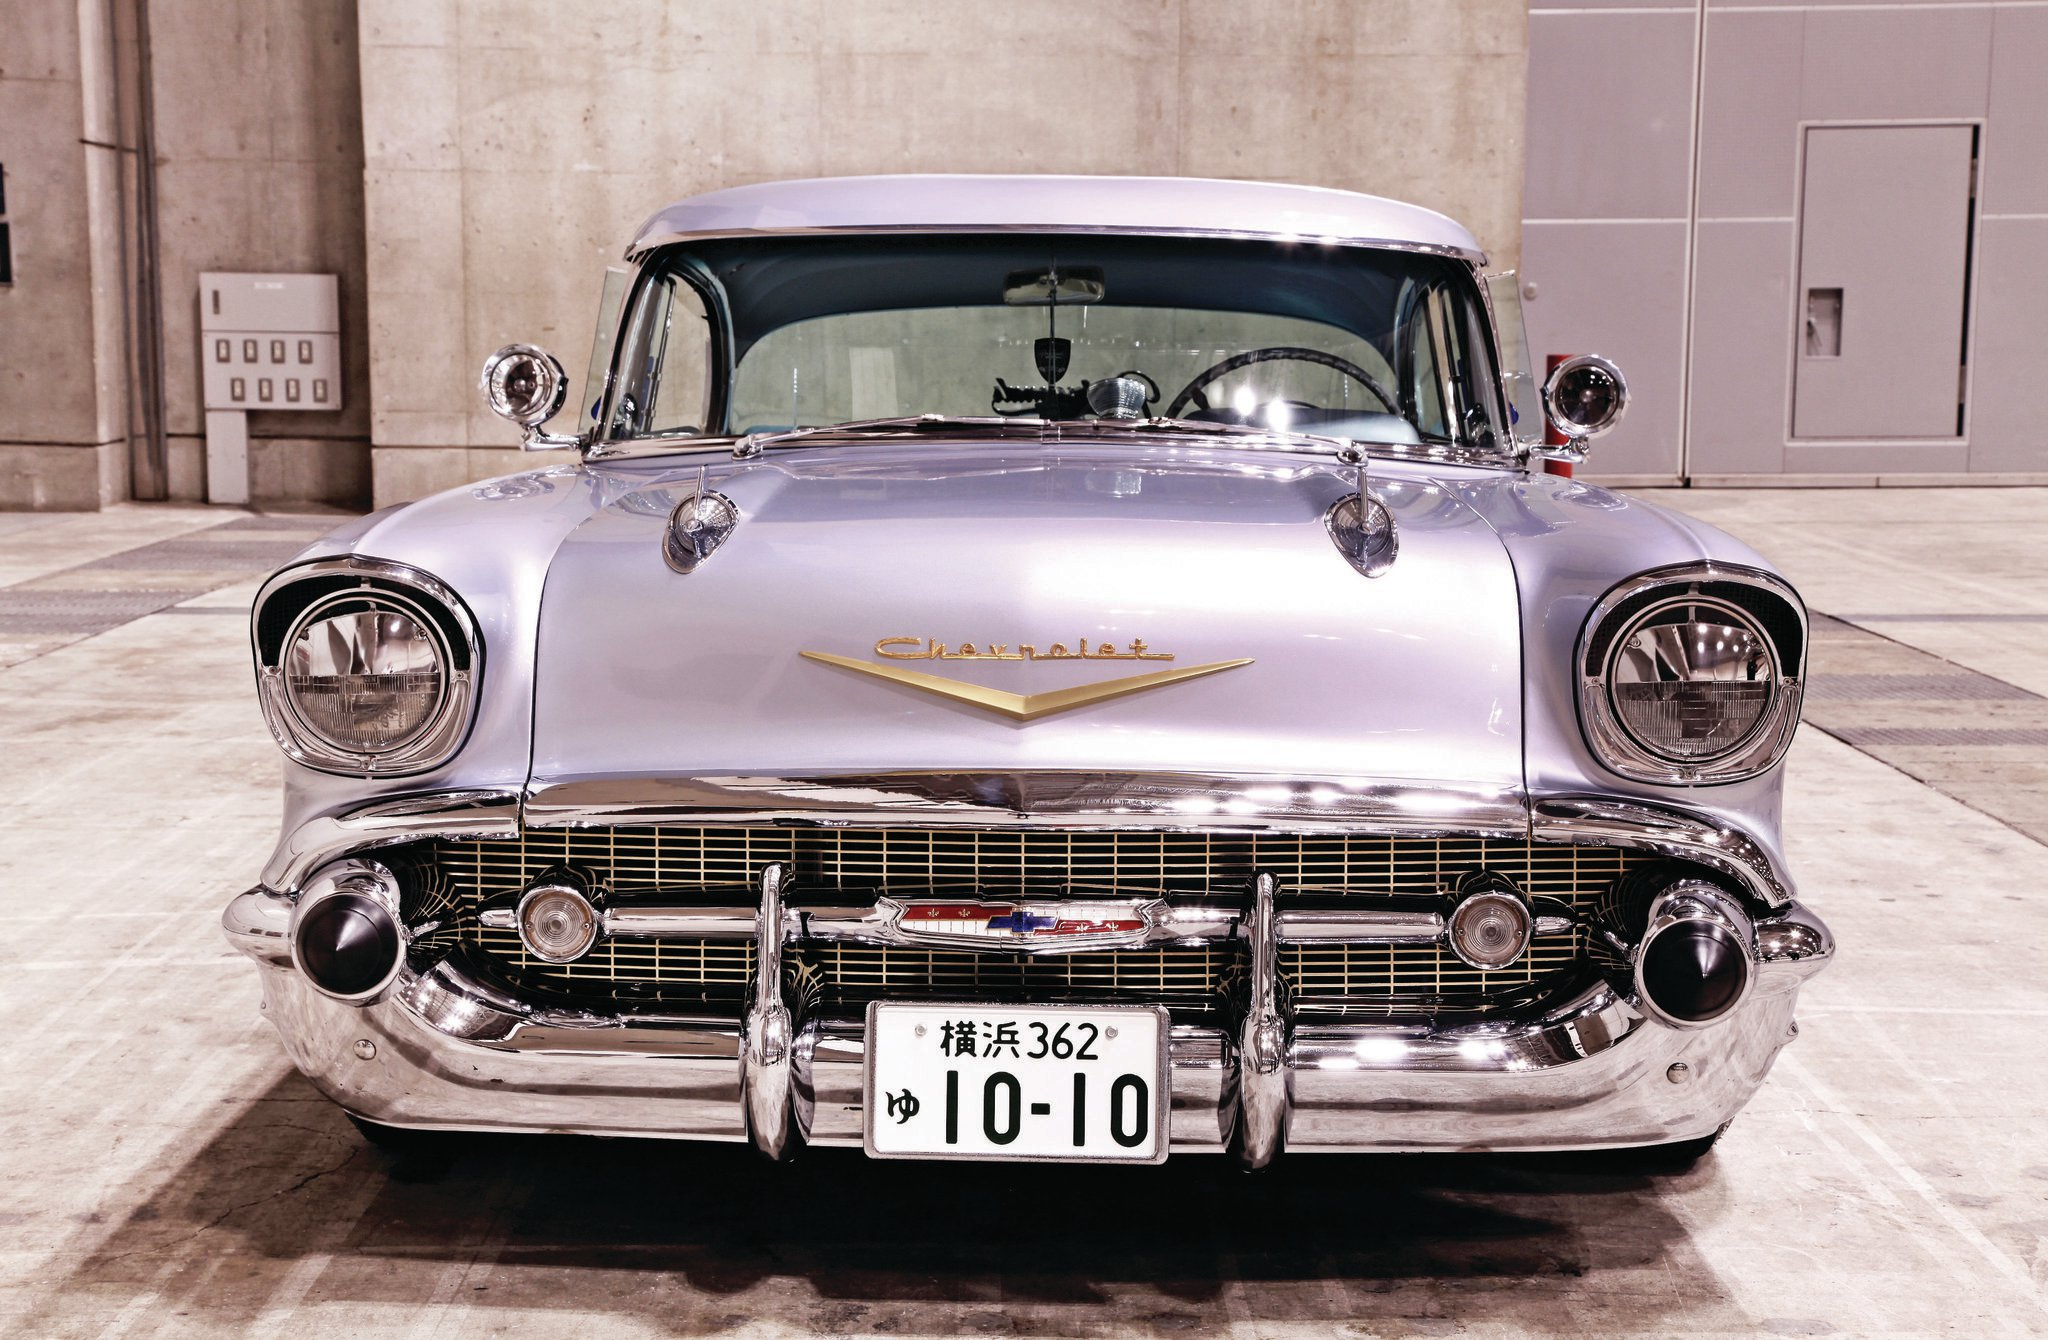 1957 Chevrolet Bel Air - Hard On The Blvd